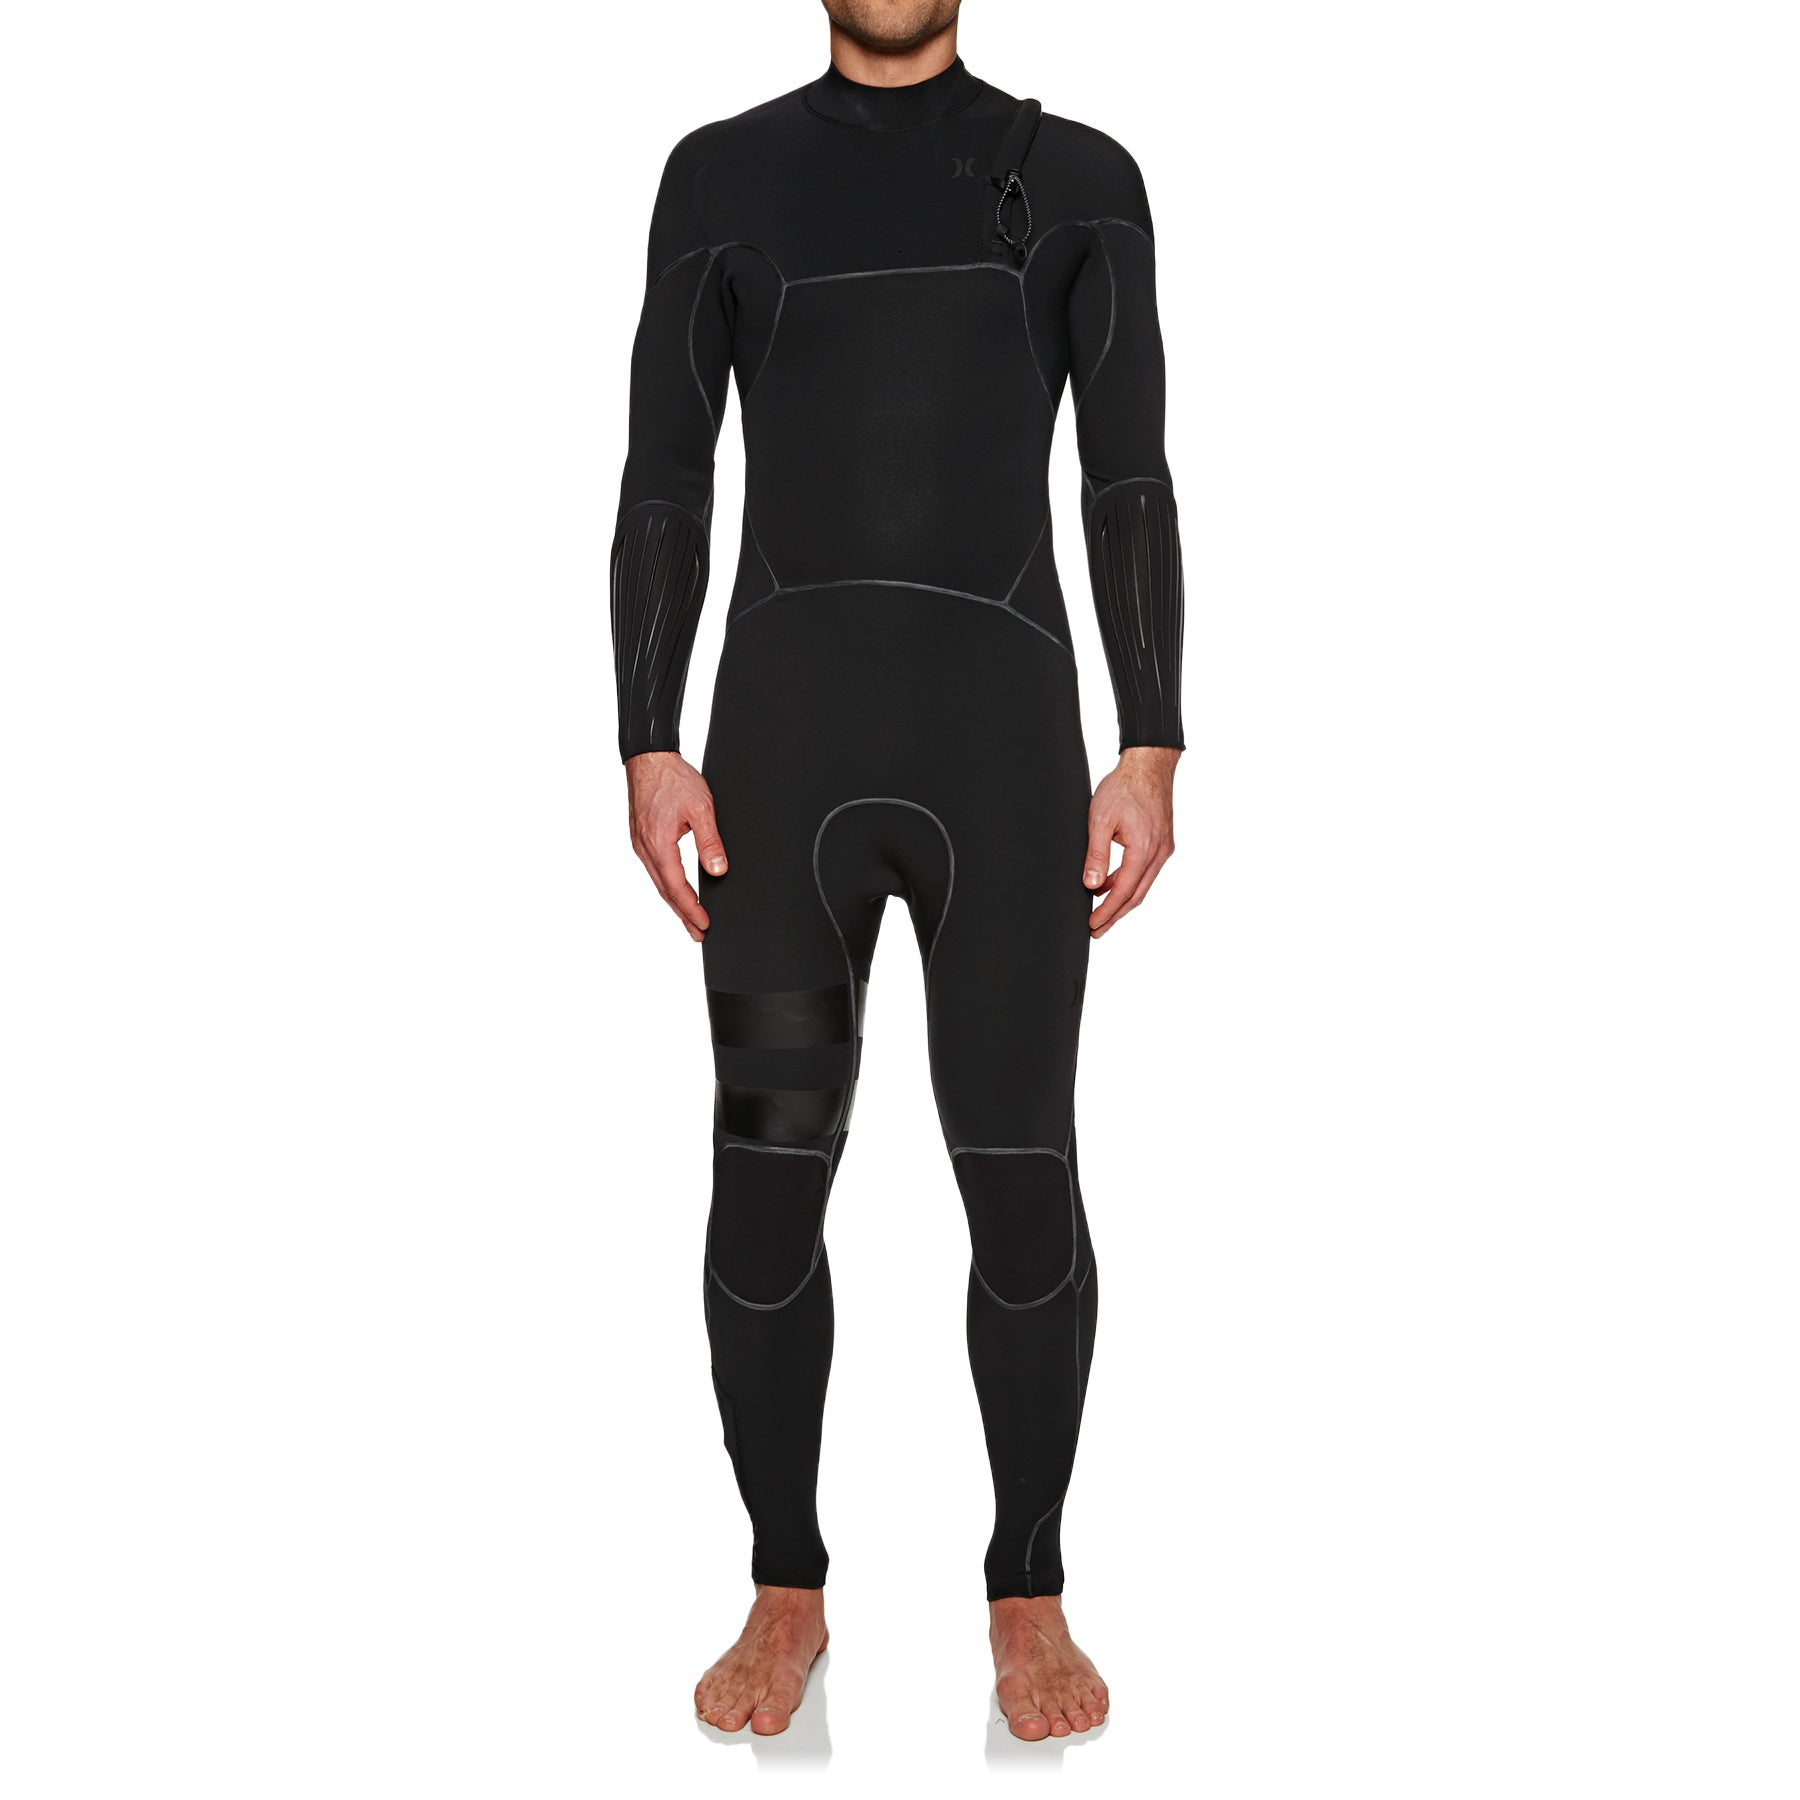 Hurley Advantage Max 3/2mm 2019 Chest Zip Wetsuit